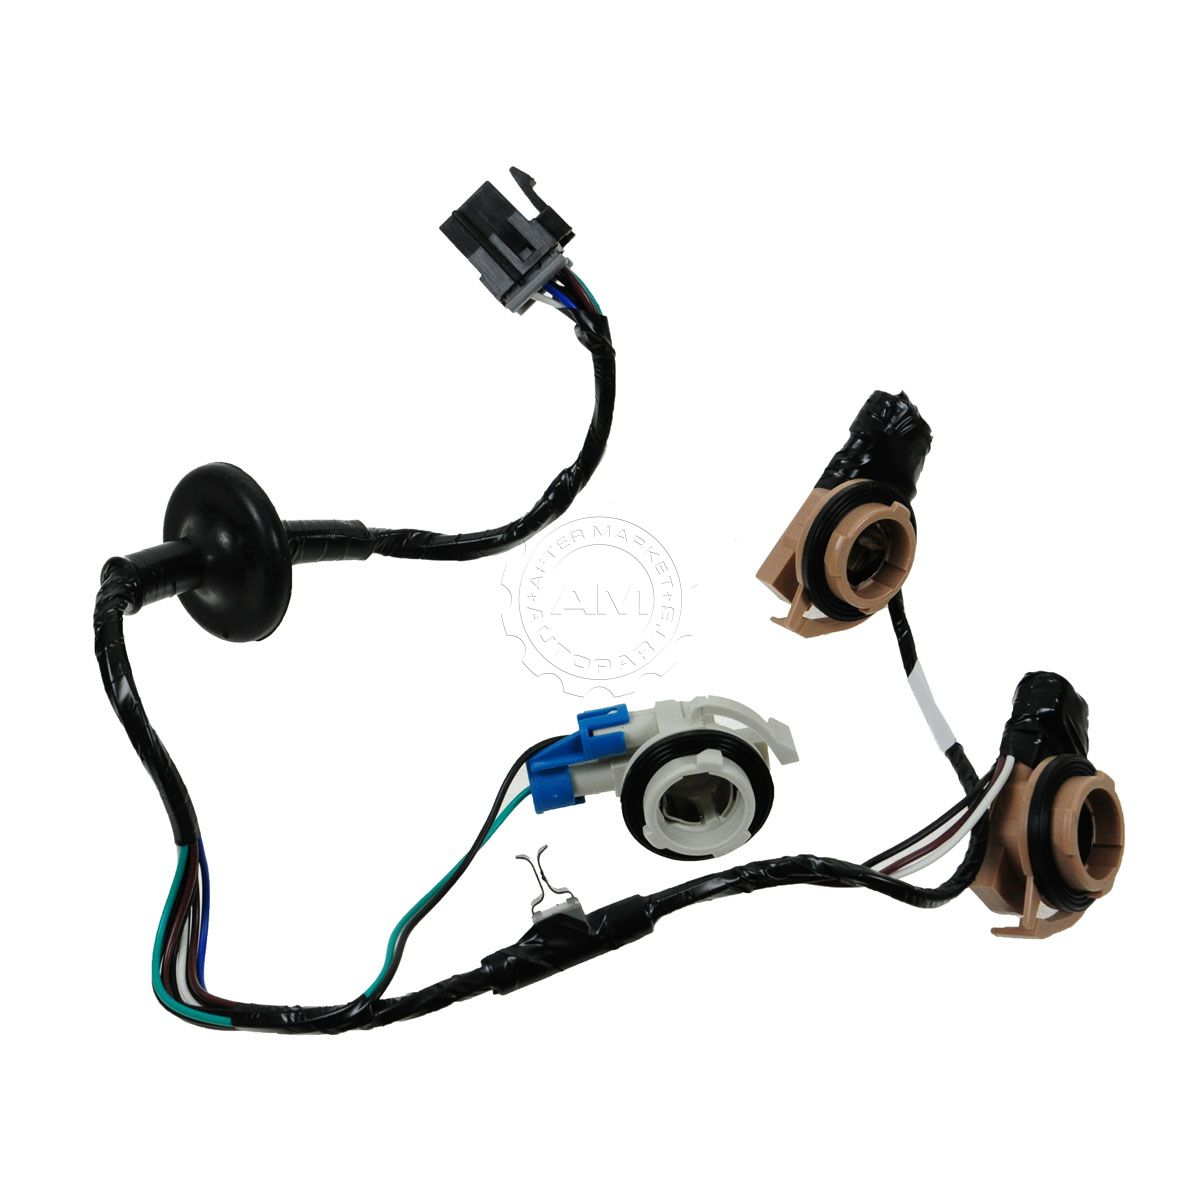 AM 3275376770 dorman 3 socket taillight taillamp wiring harness for chevy dorman wiring harness at webbmarketing.co